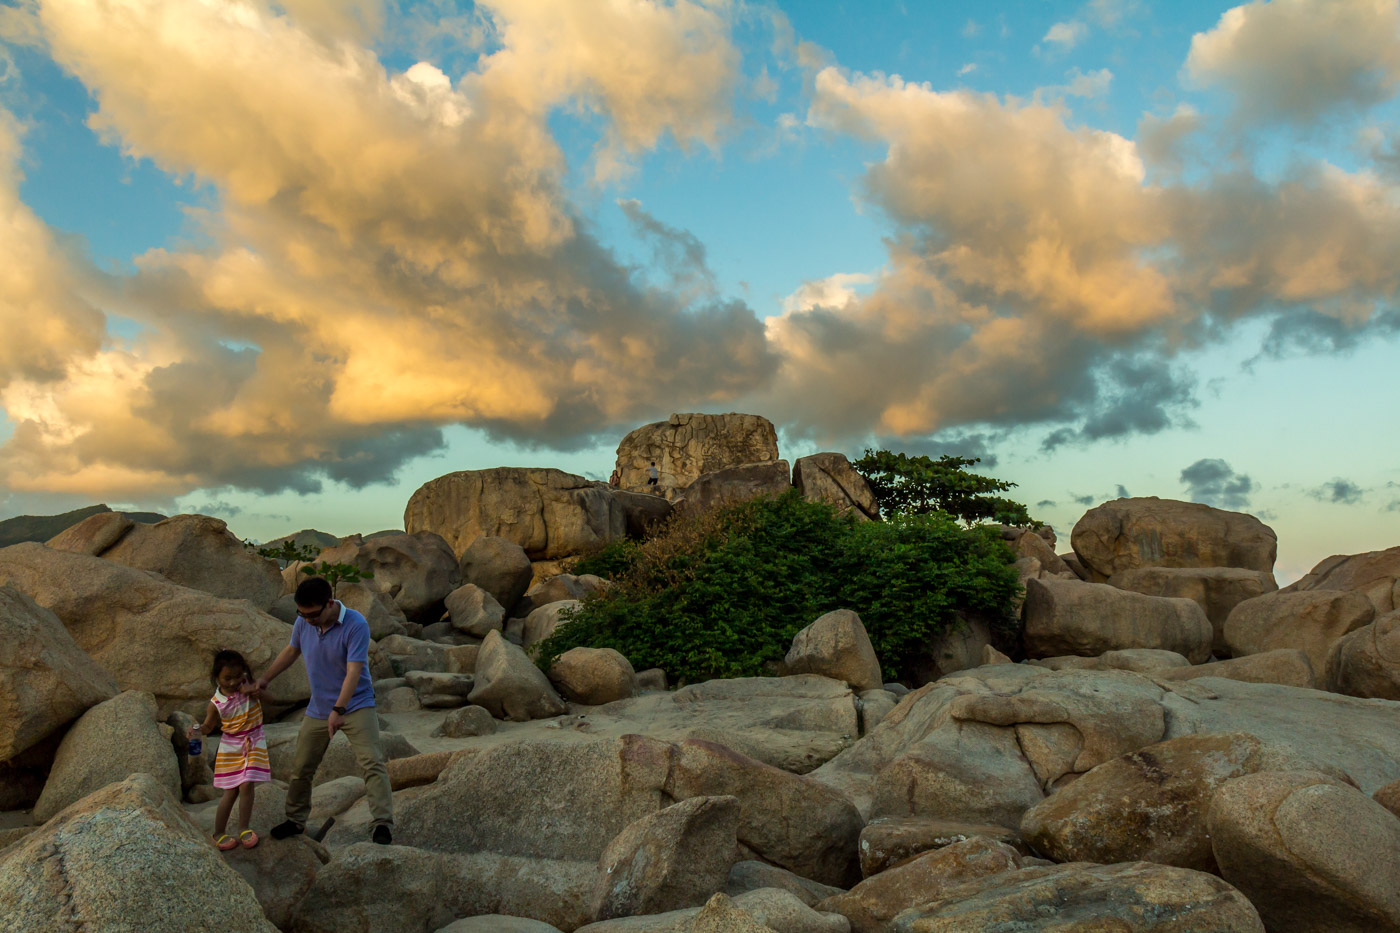 A father and daughter explore the rocks.